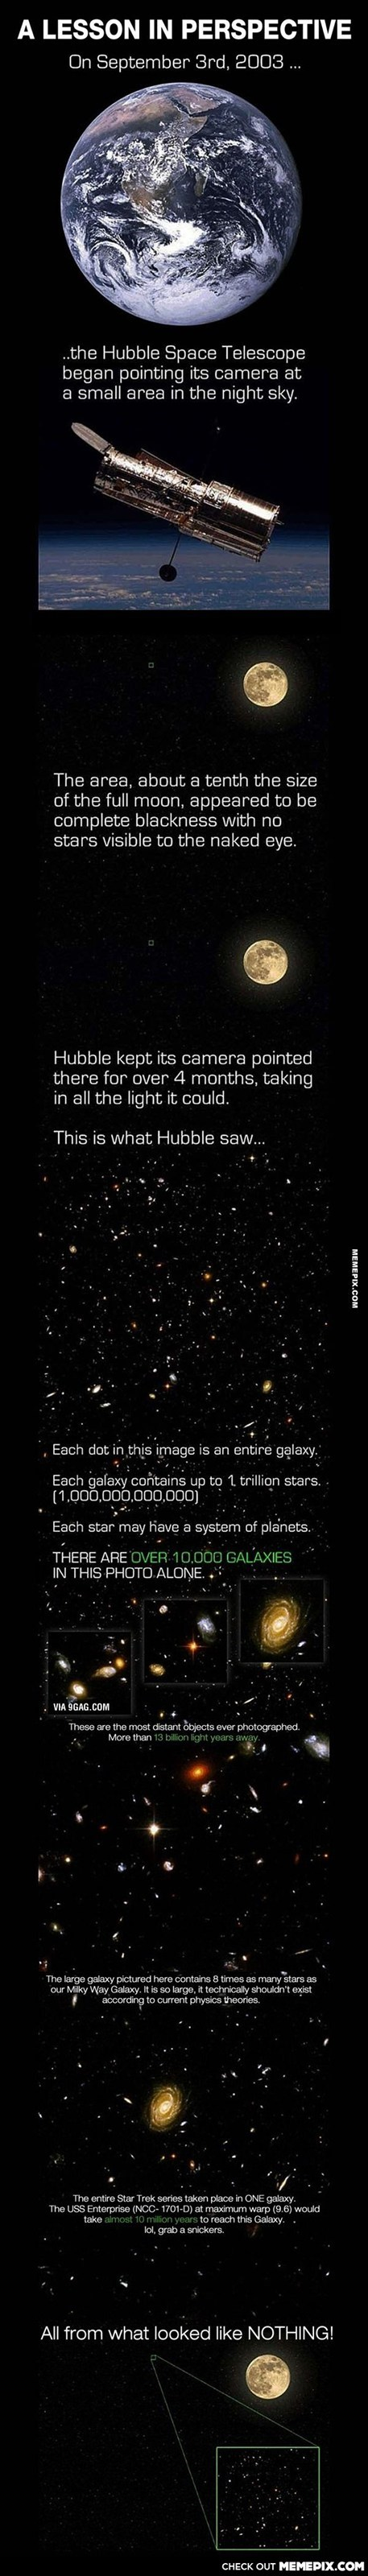 This is proof that we are completely insignificant